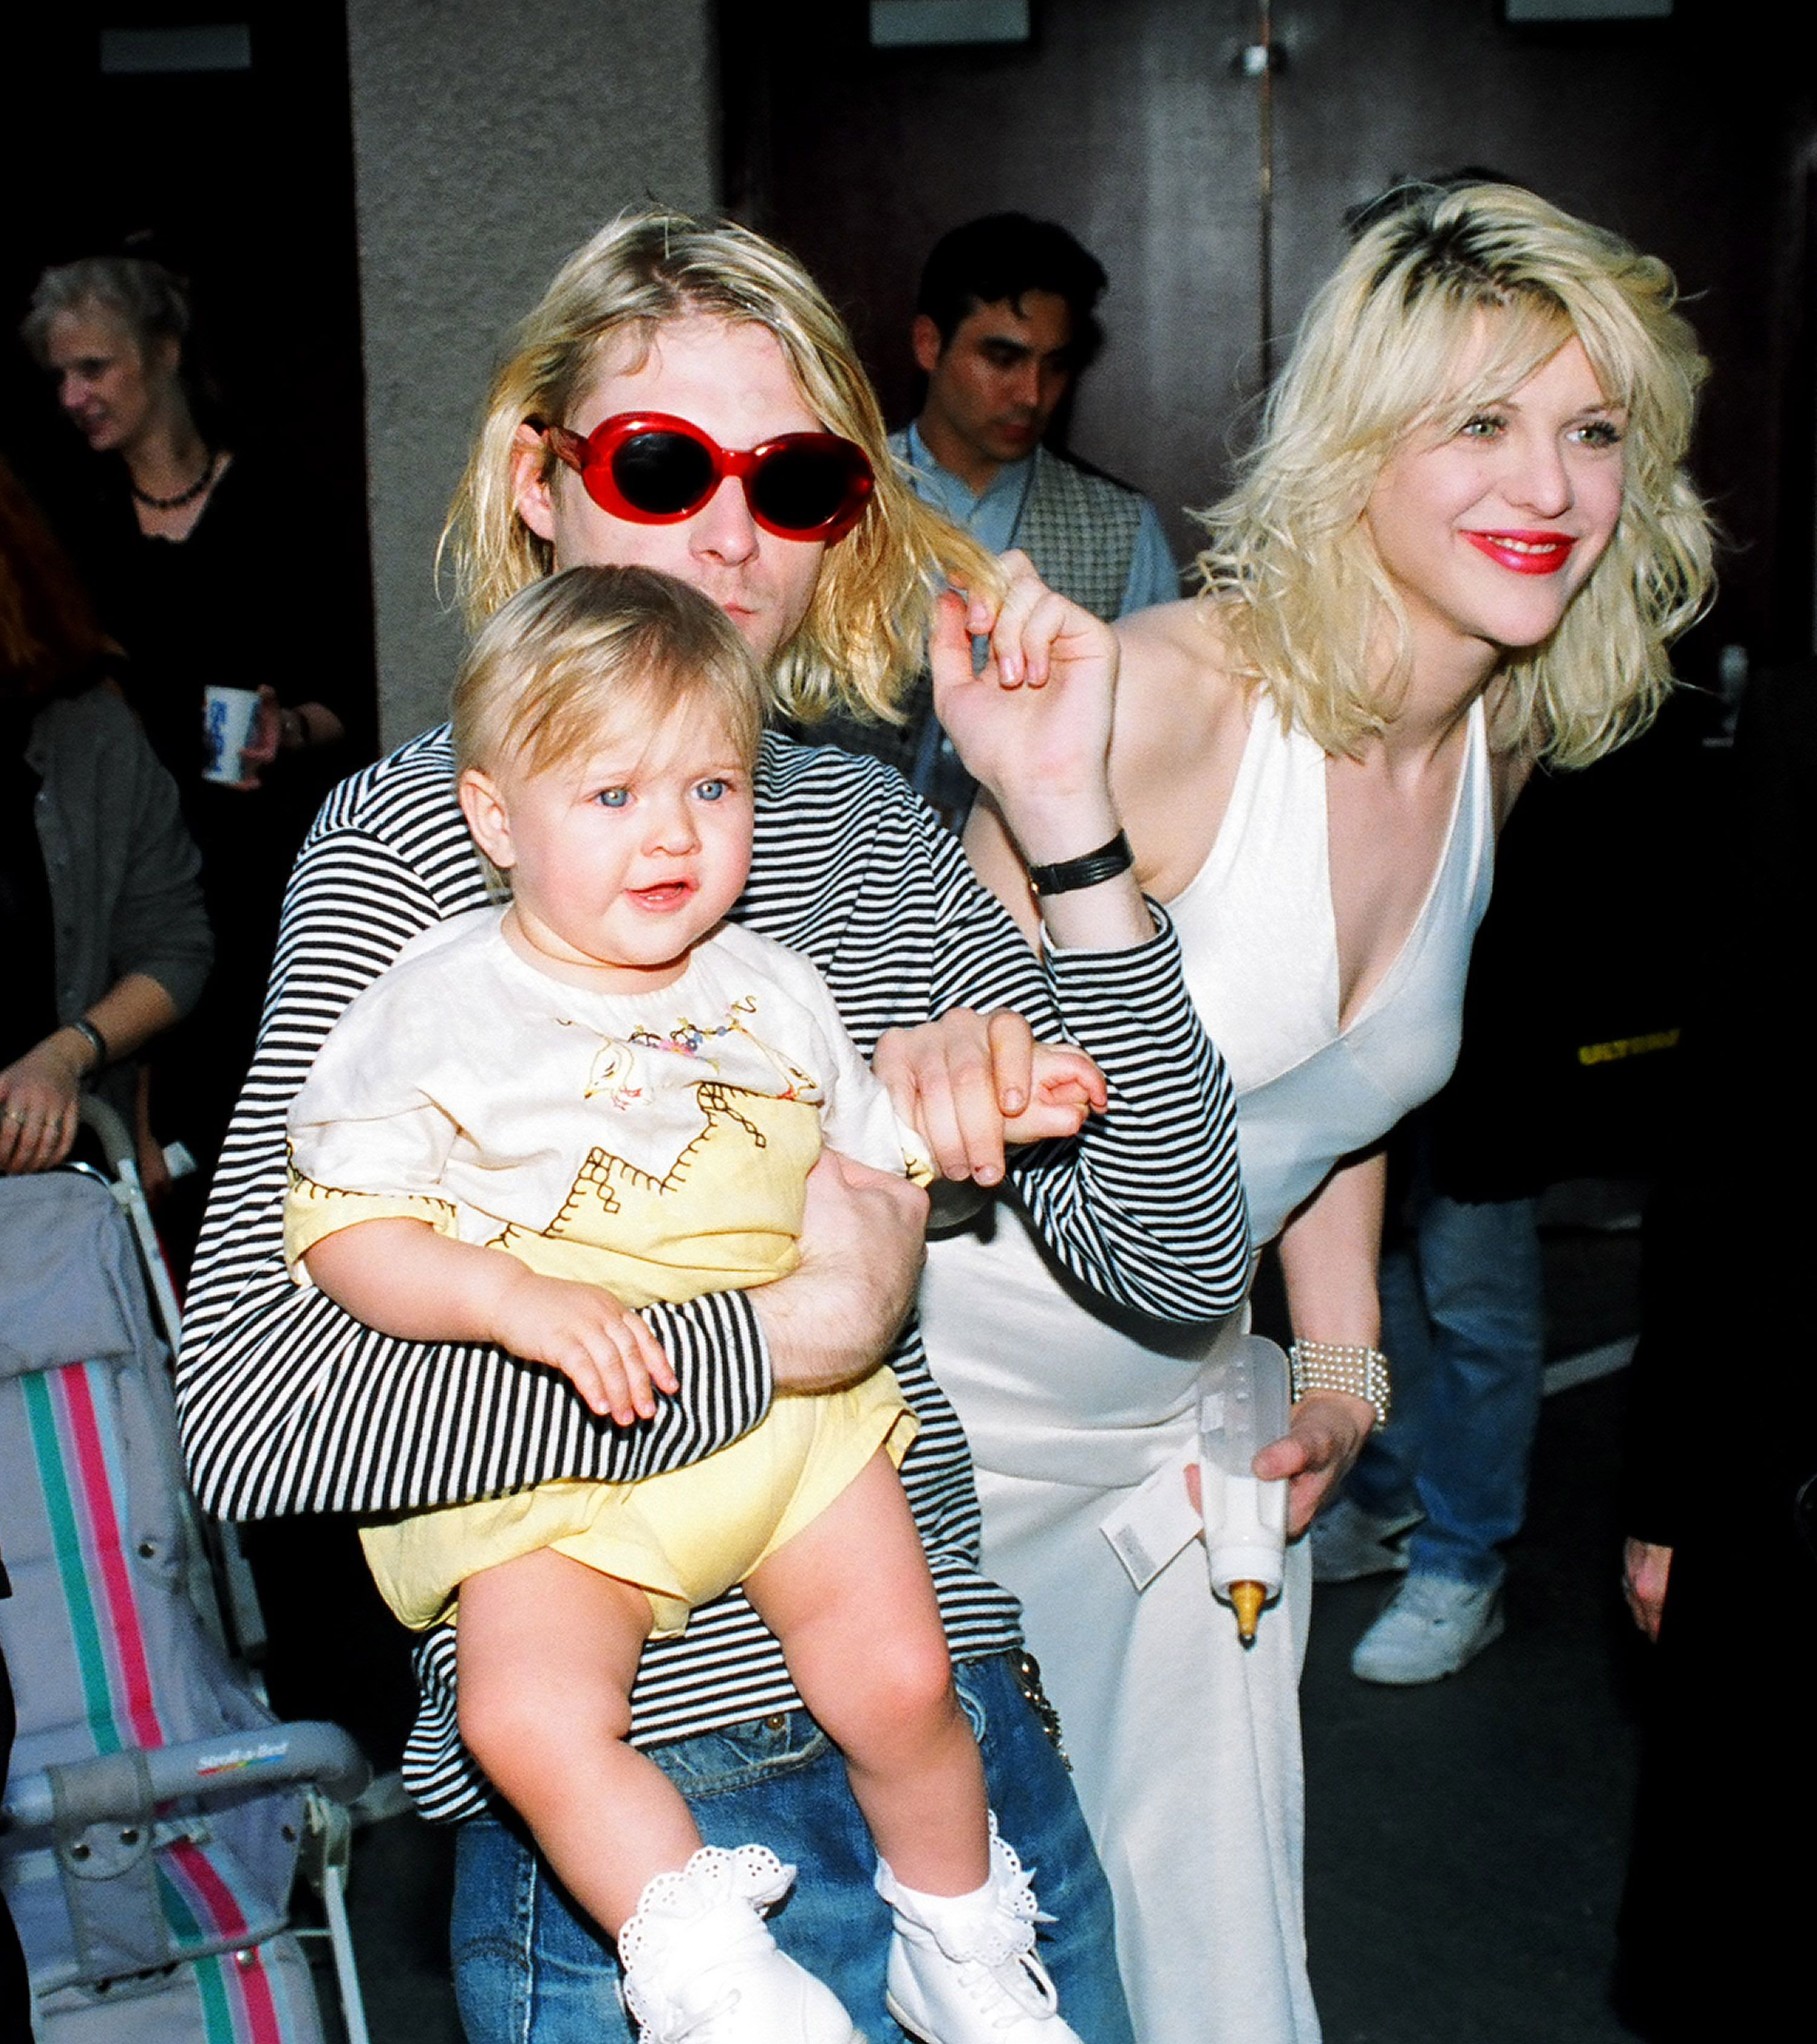 Kurt Cobain of Nirvana, Courtney Love and daughter Frances at the 1993 MTV Video Music Awards | Source: Getty Images